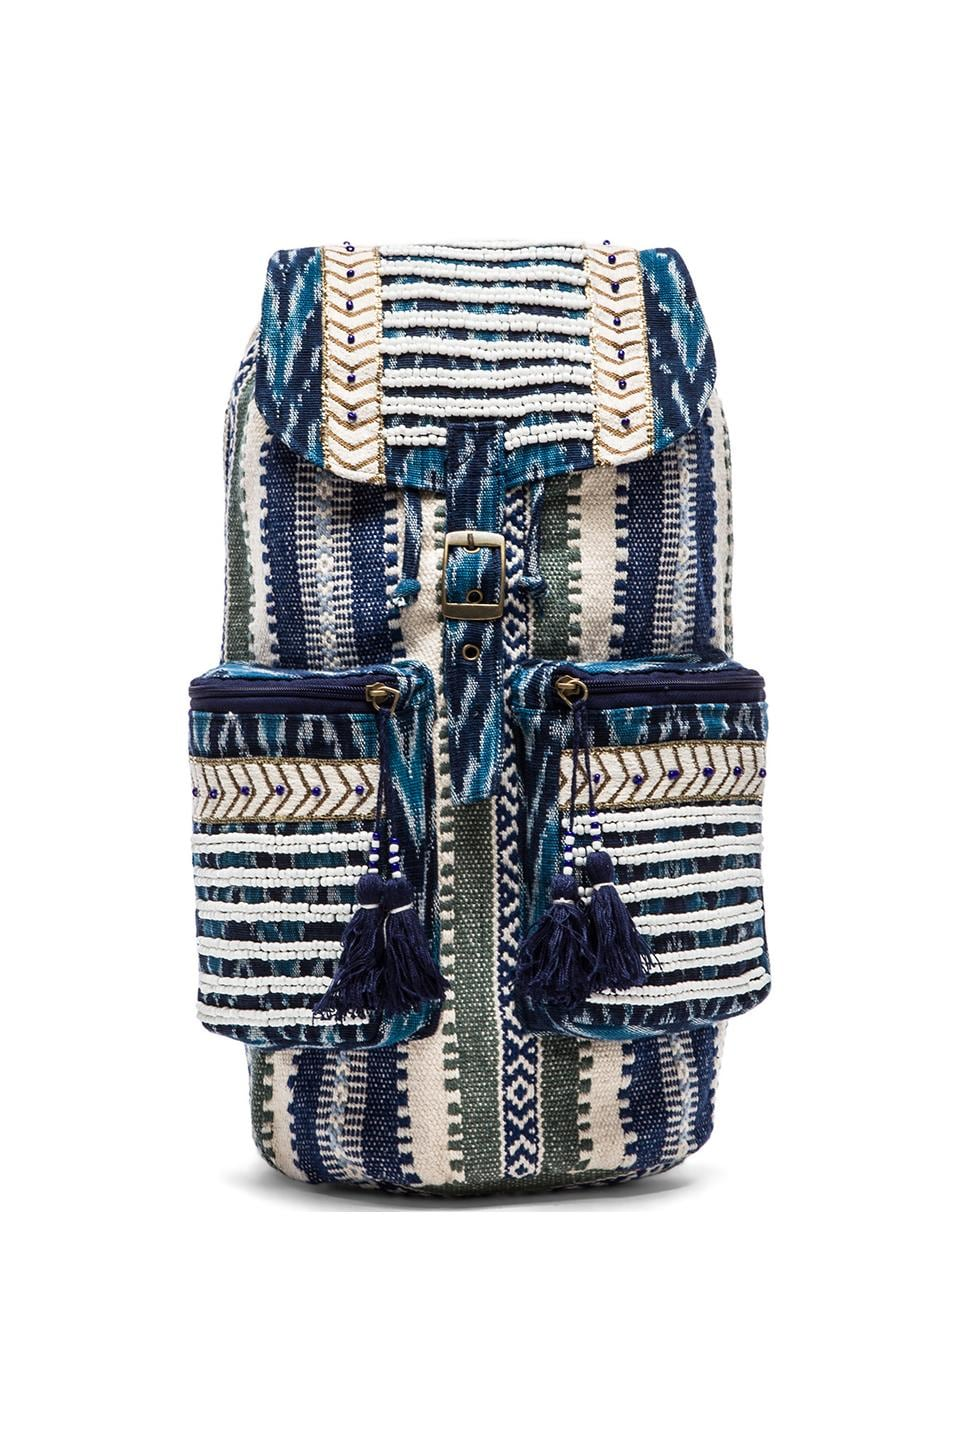 STELA 9 Shiva Backpack in Blue Multi